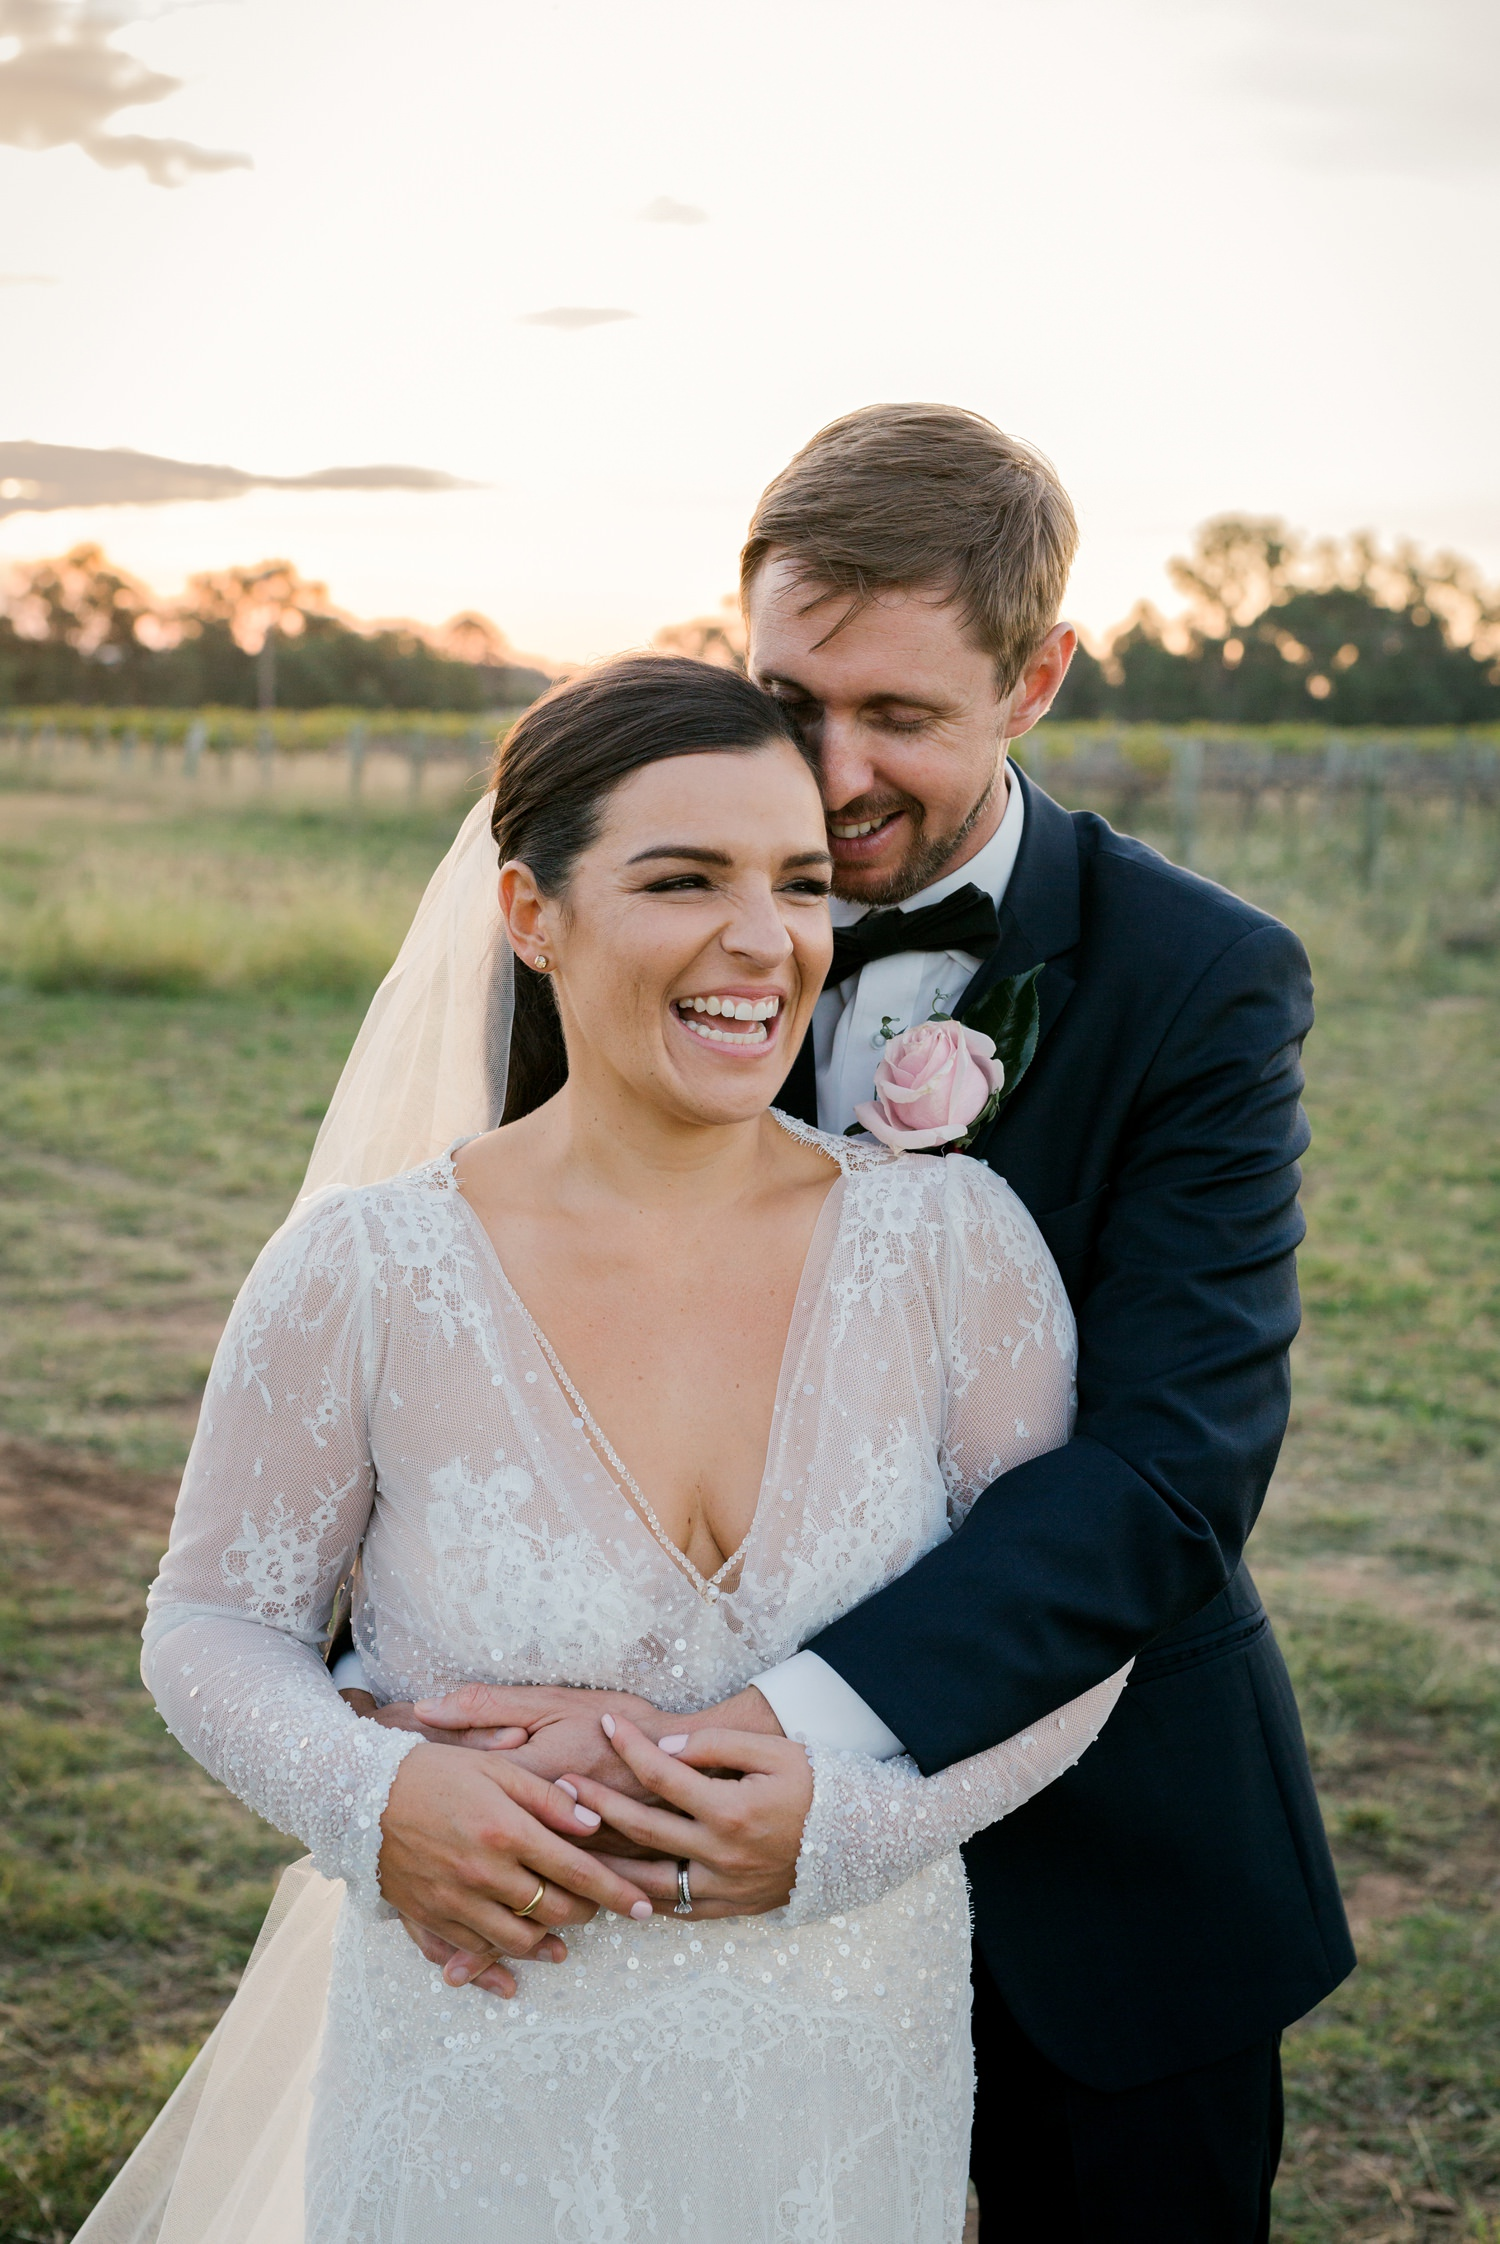 sarah jared the vinegrove mudgee canberra wedding photographer erin latimore 87.jpg